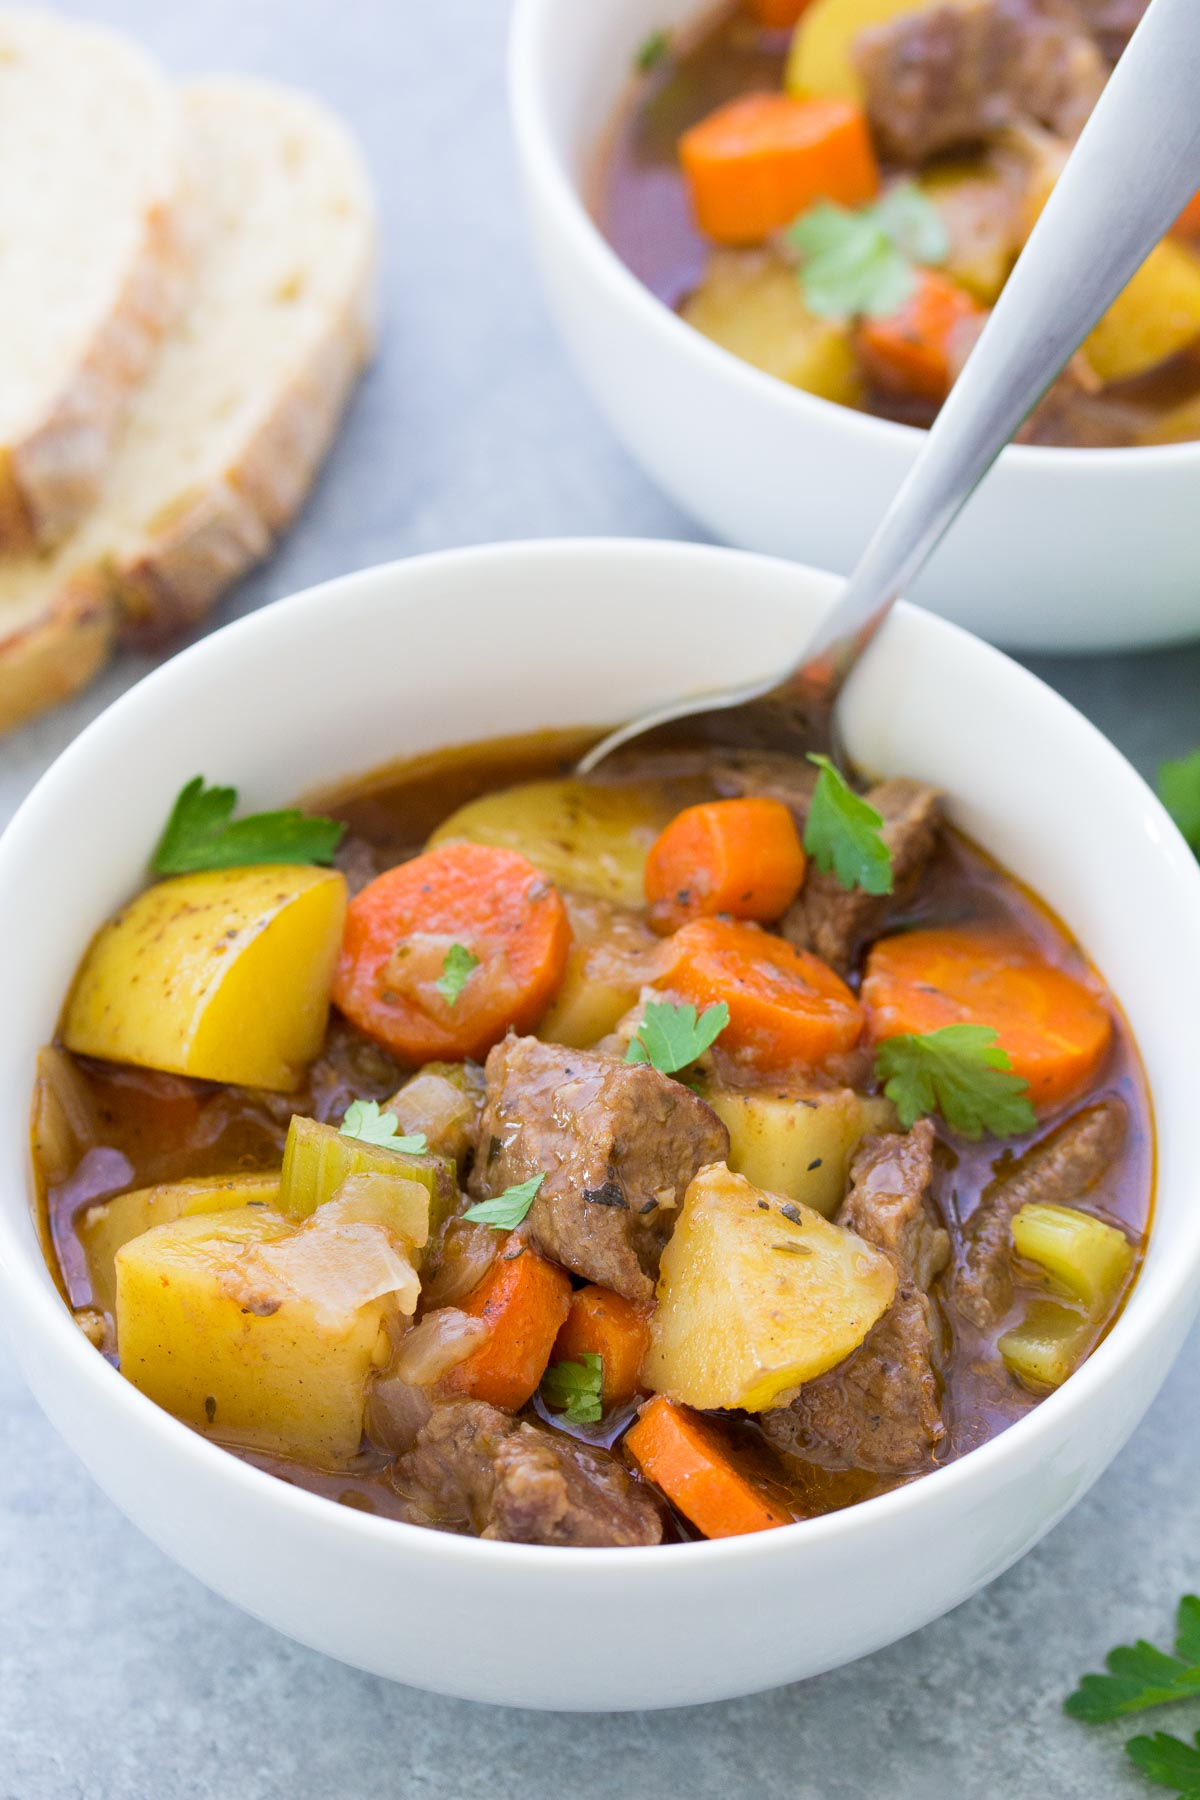 beef stew with potatoes and carrots in a white bowl with a spoon